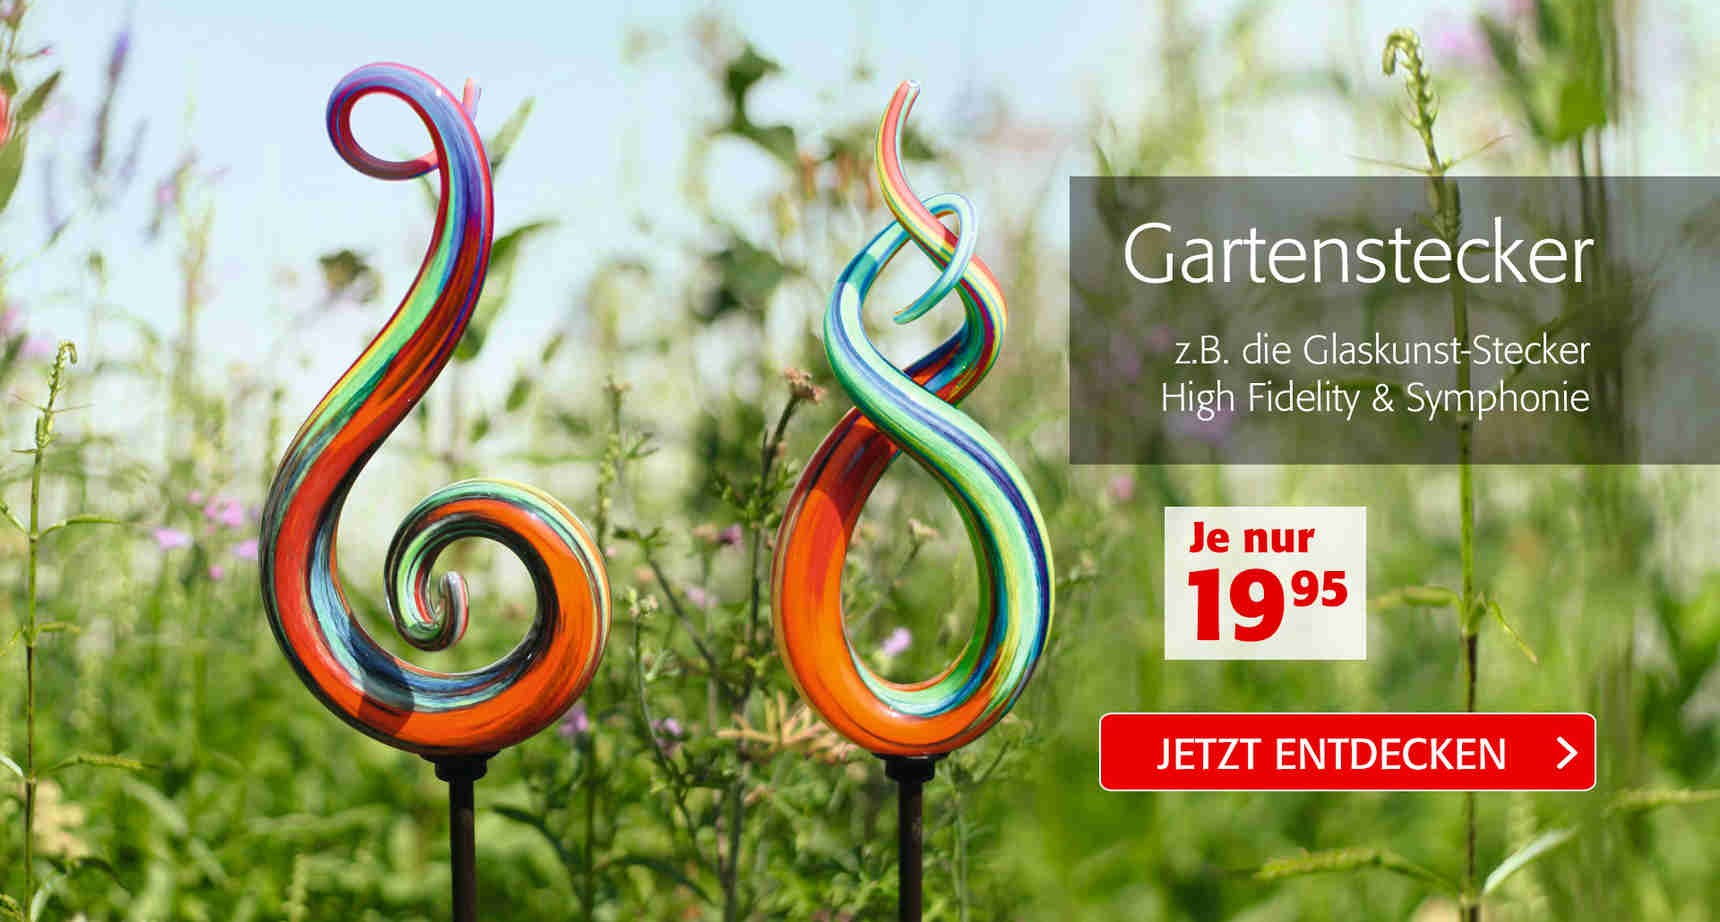 +++ Gartenstecker +++ - 3